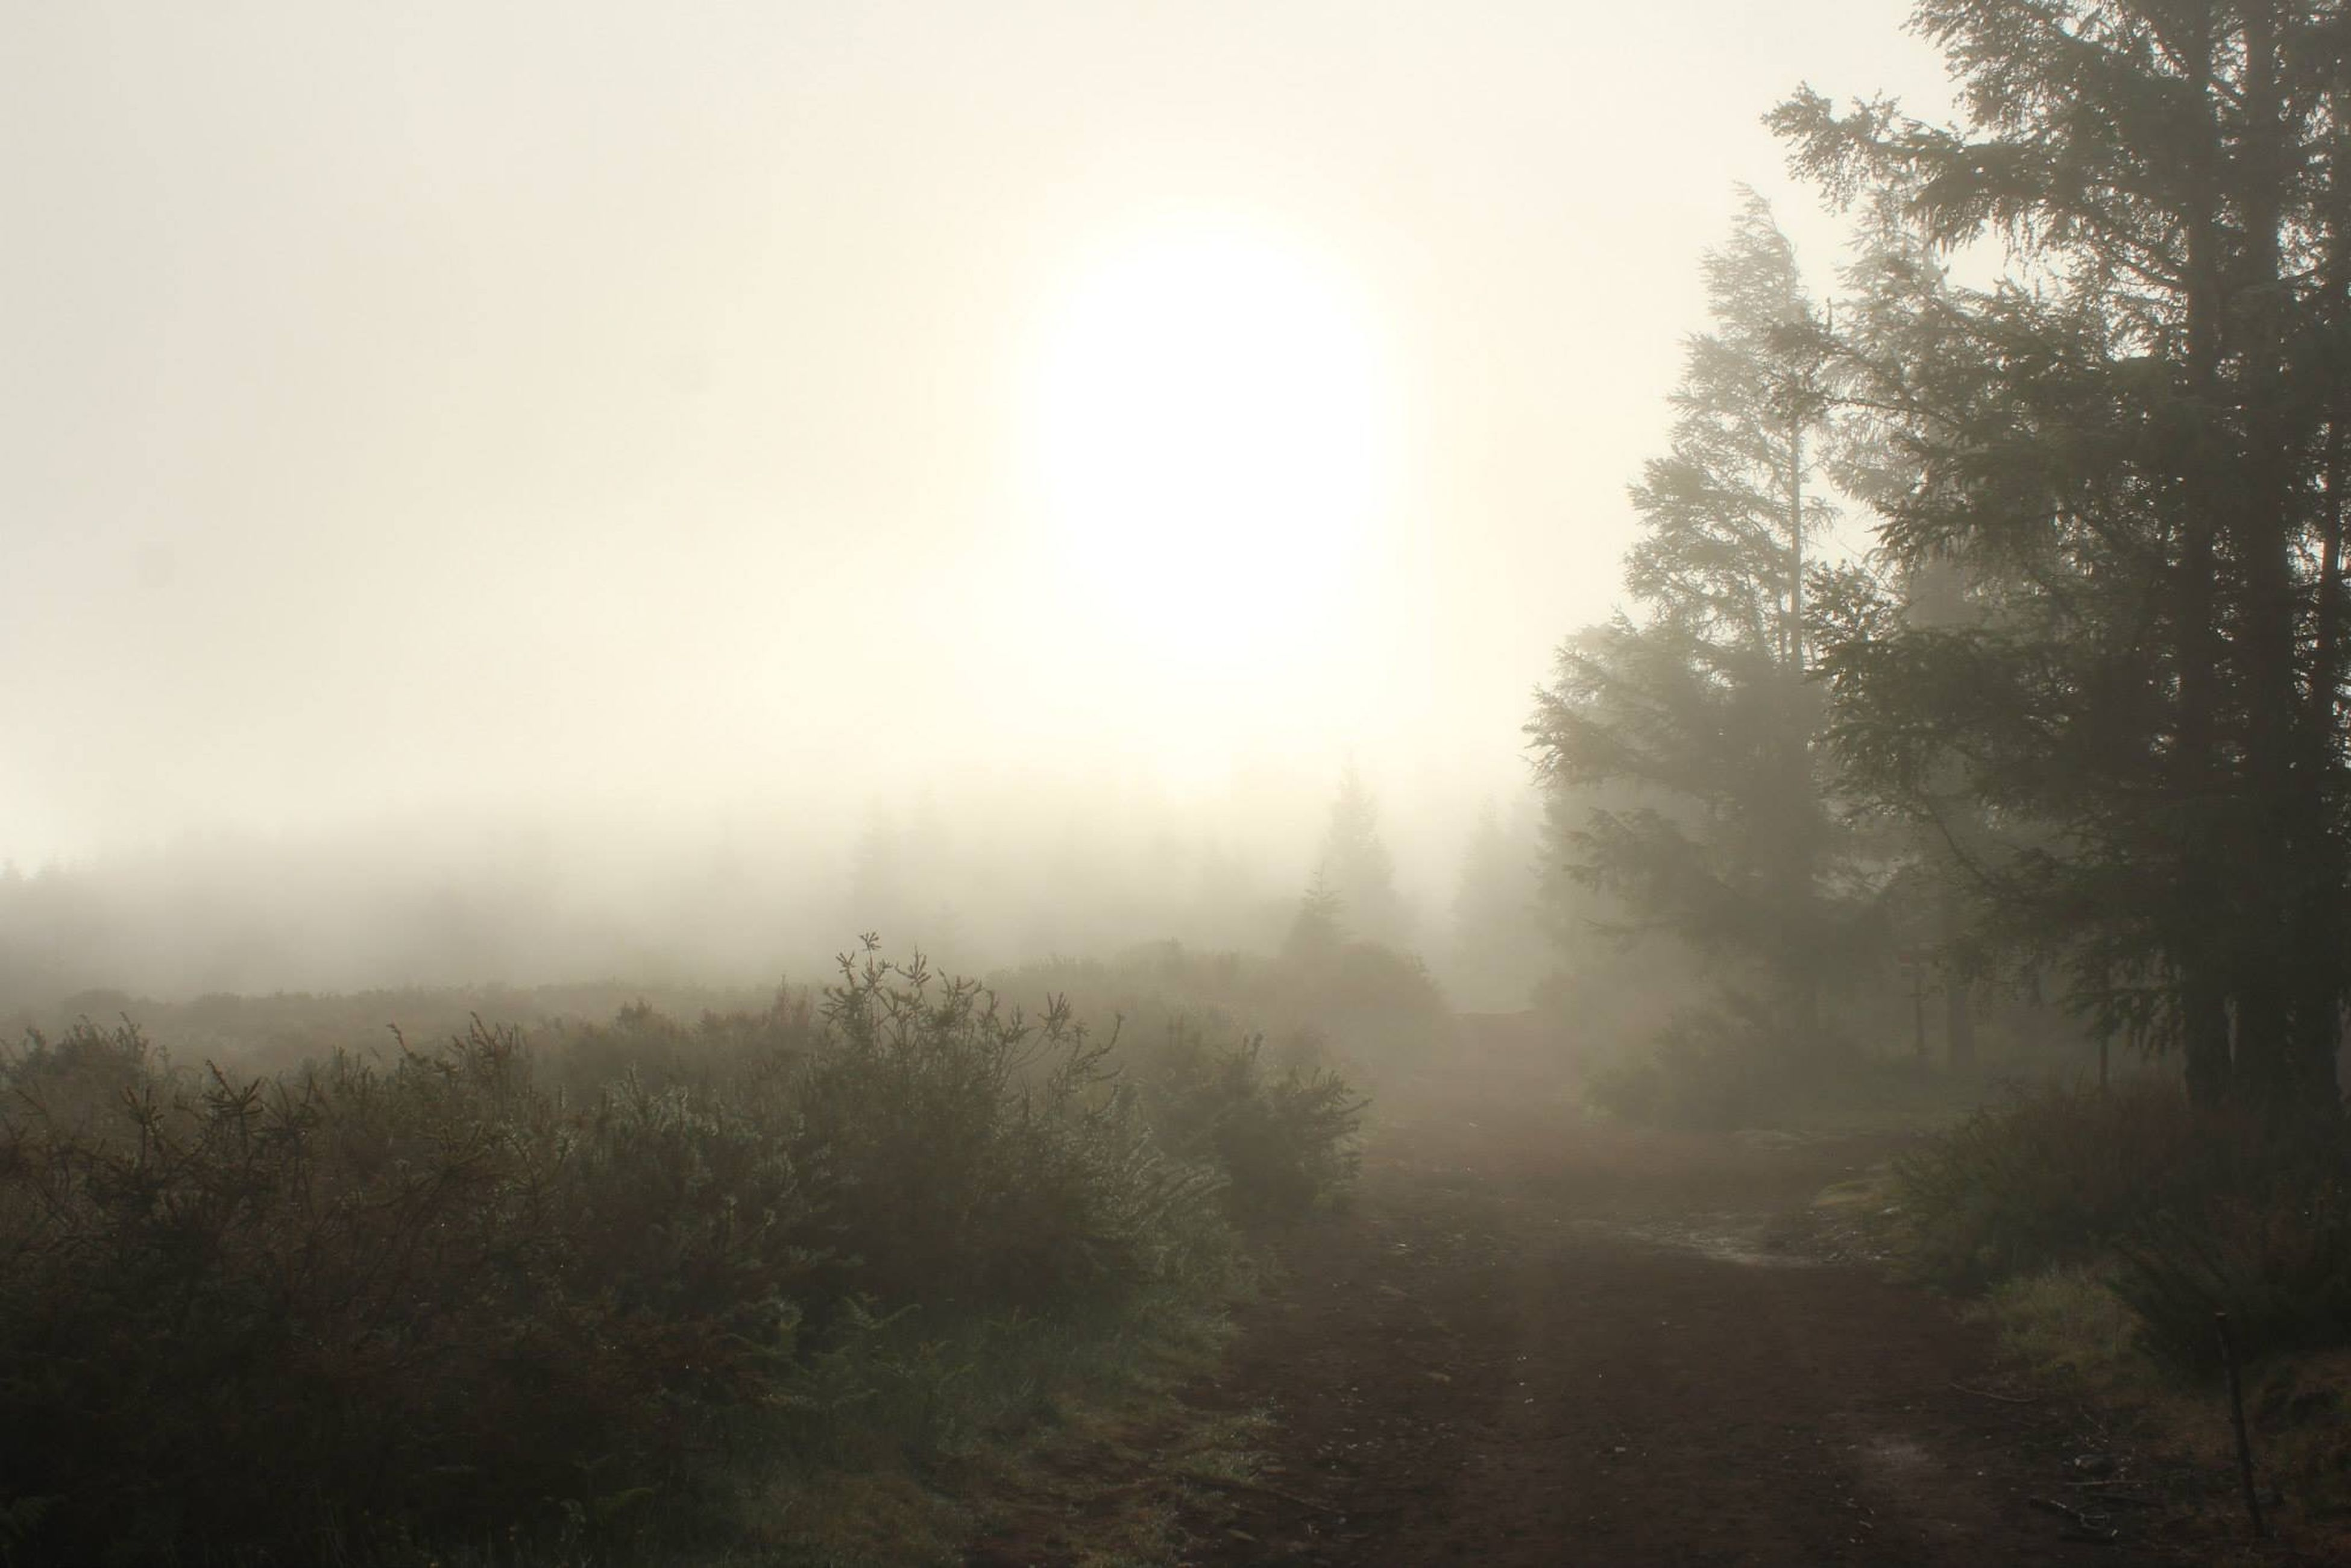 fog, tree, foggy, tranquility, tranquil scene, weather, scenics, nature, beauty in nature, the way forward, landscape, forest, non-urban scene, growth, field, winter, dirt road, sky, outdoors